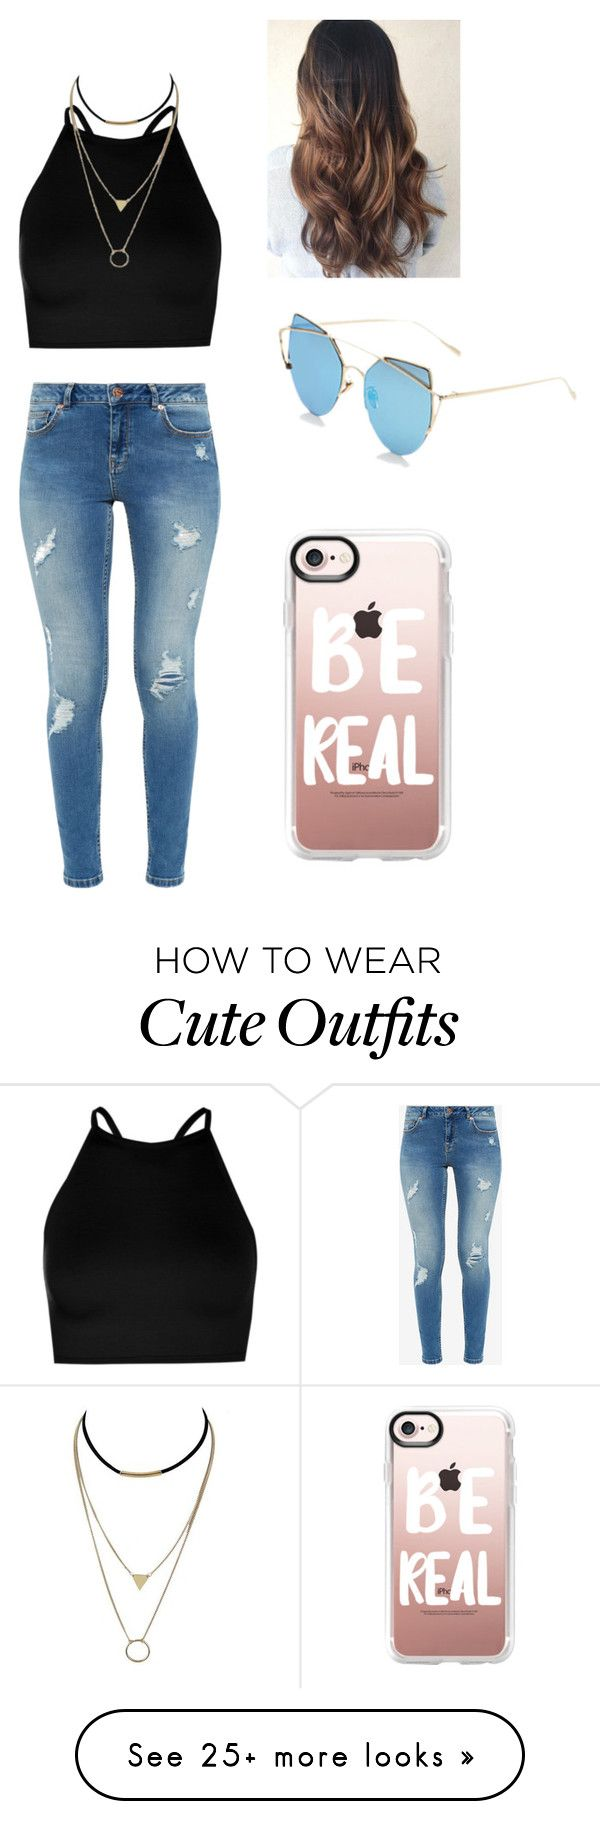 """Cute outfit"" by rainbow2570 on Polyvore featuring Boohoo, Ted Baker, Supa Sundays and Casetify"